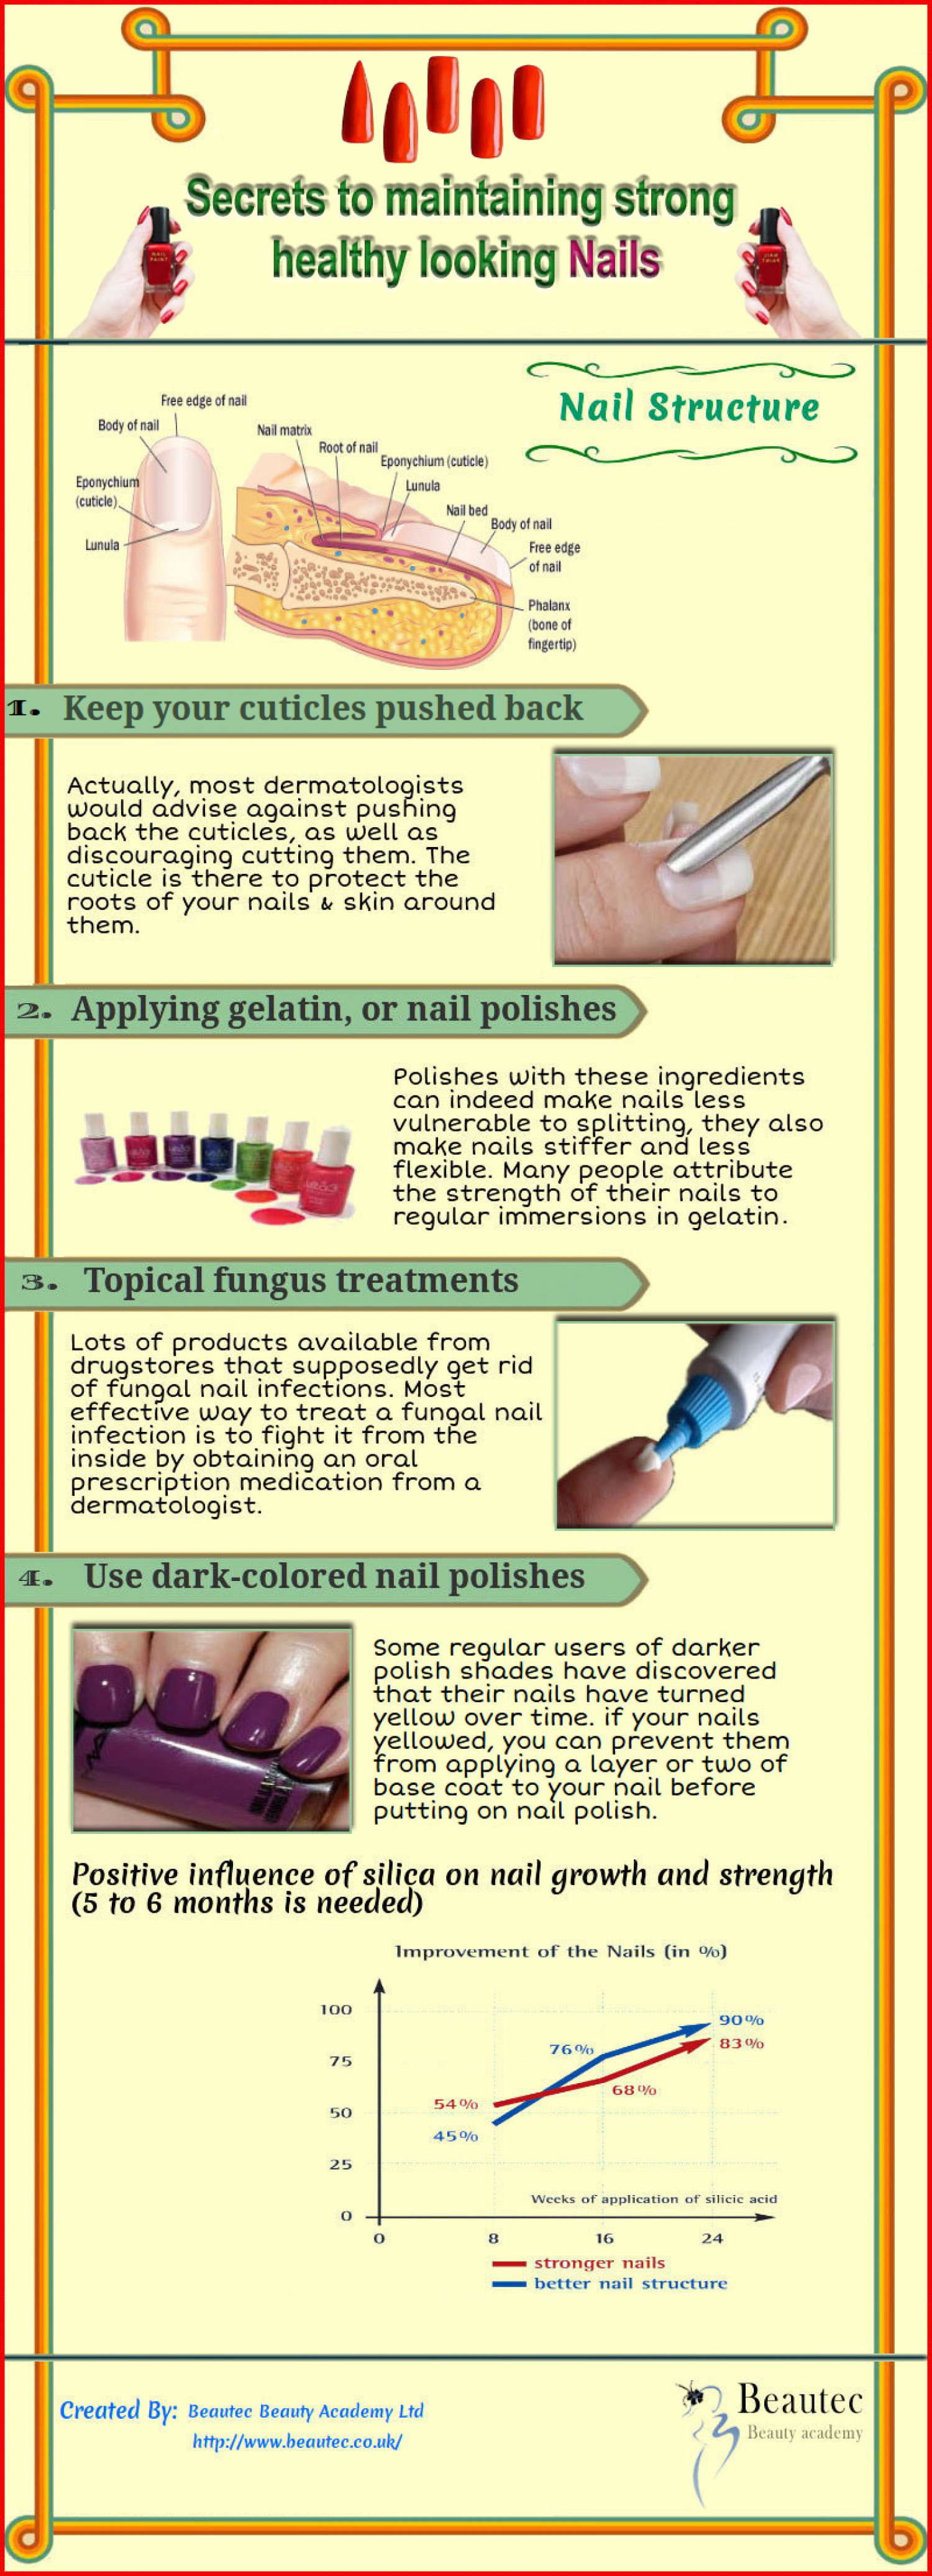 Secrets to maintaining strong healthy looking Nails Infographic